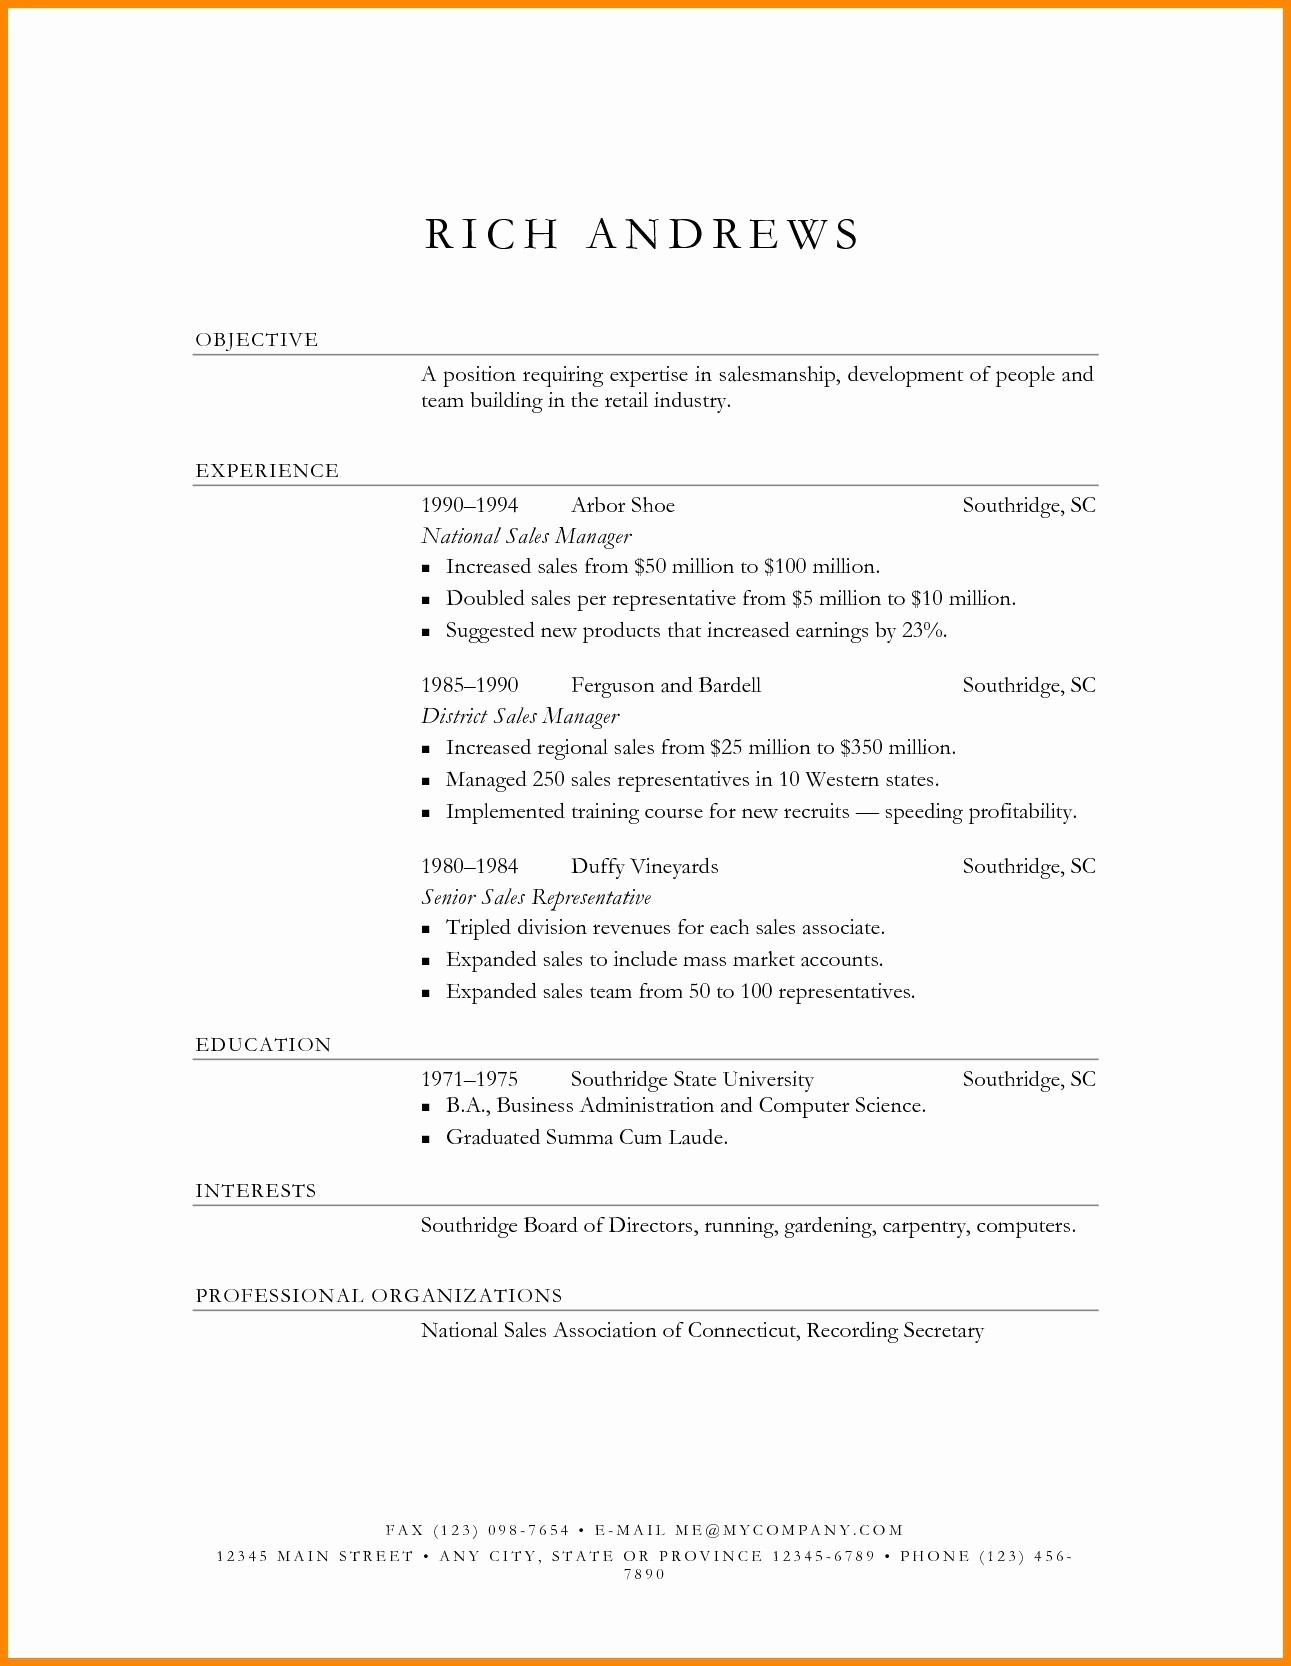 Resume Cover Letter Word Template Unique Free Fax Cover Letter Template Word Samples